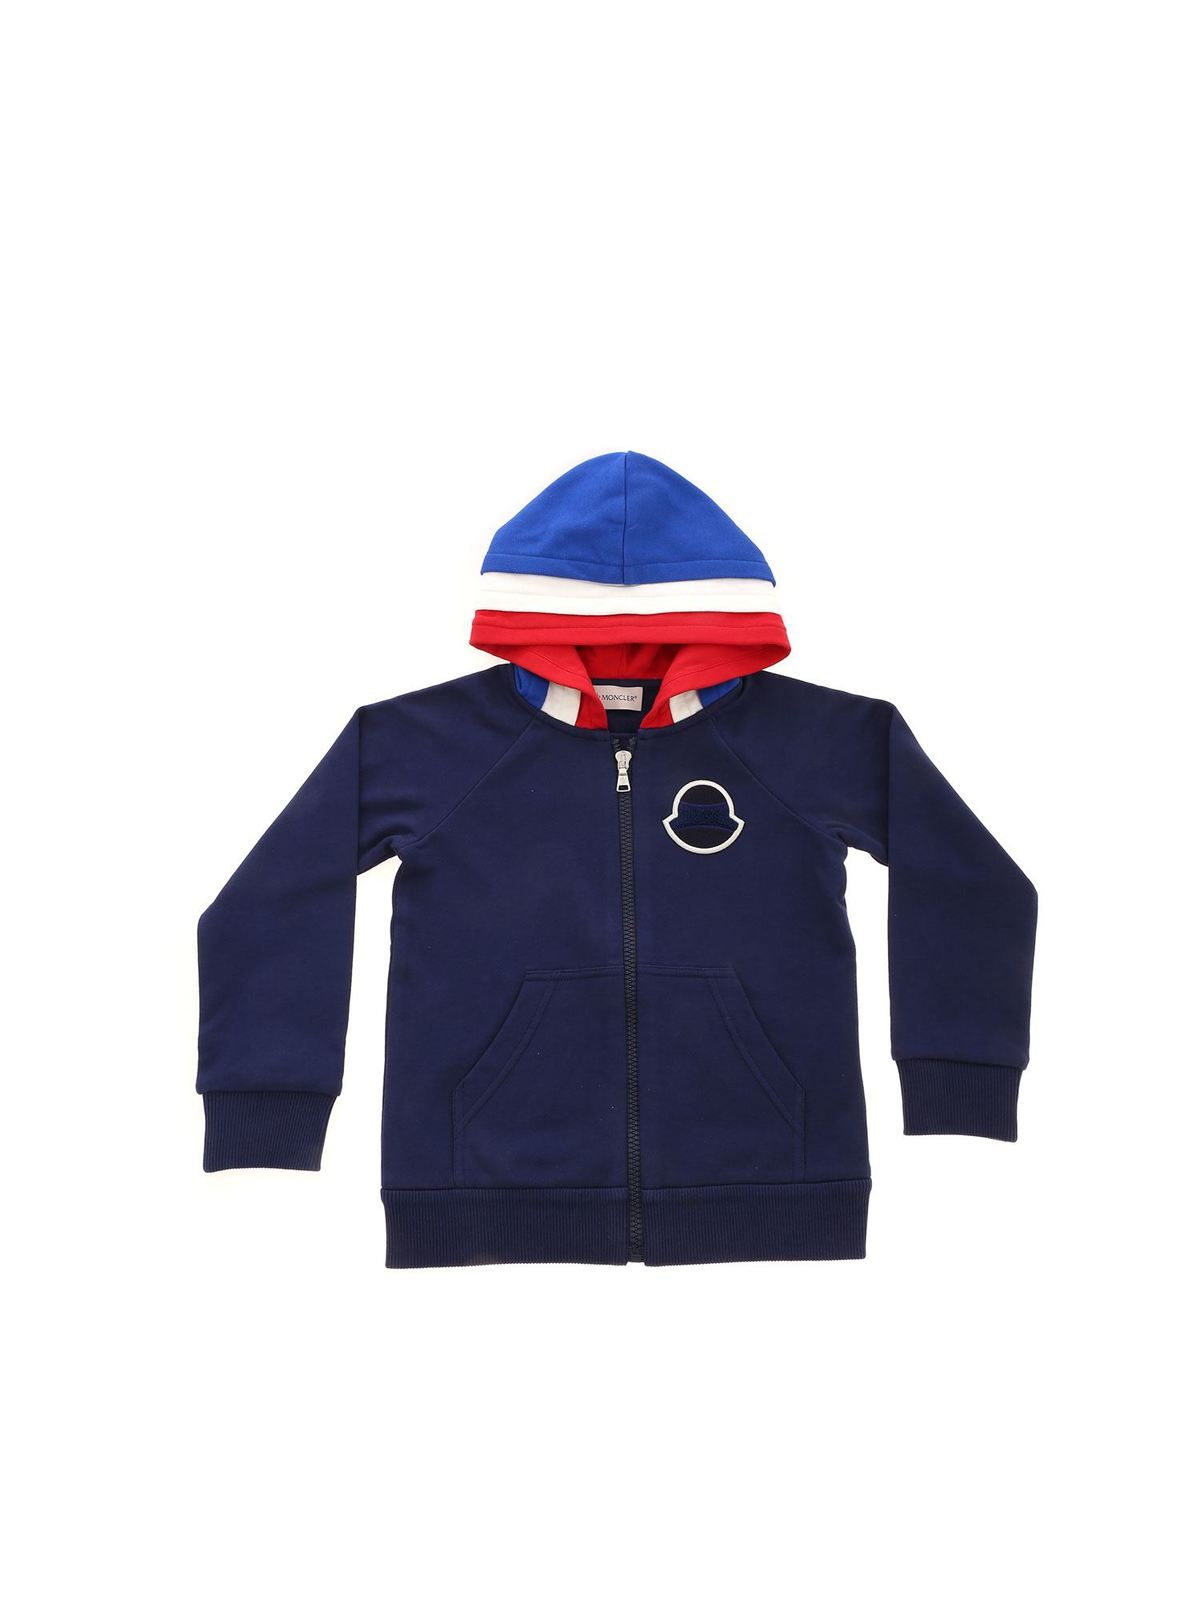 MONCLER JR TONE-ON-TONE LOGO PATCH SWEATSHIRT IN BLUE